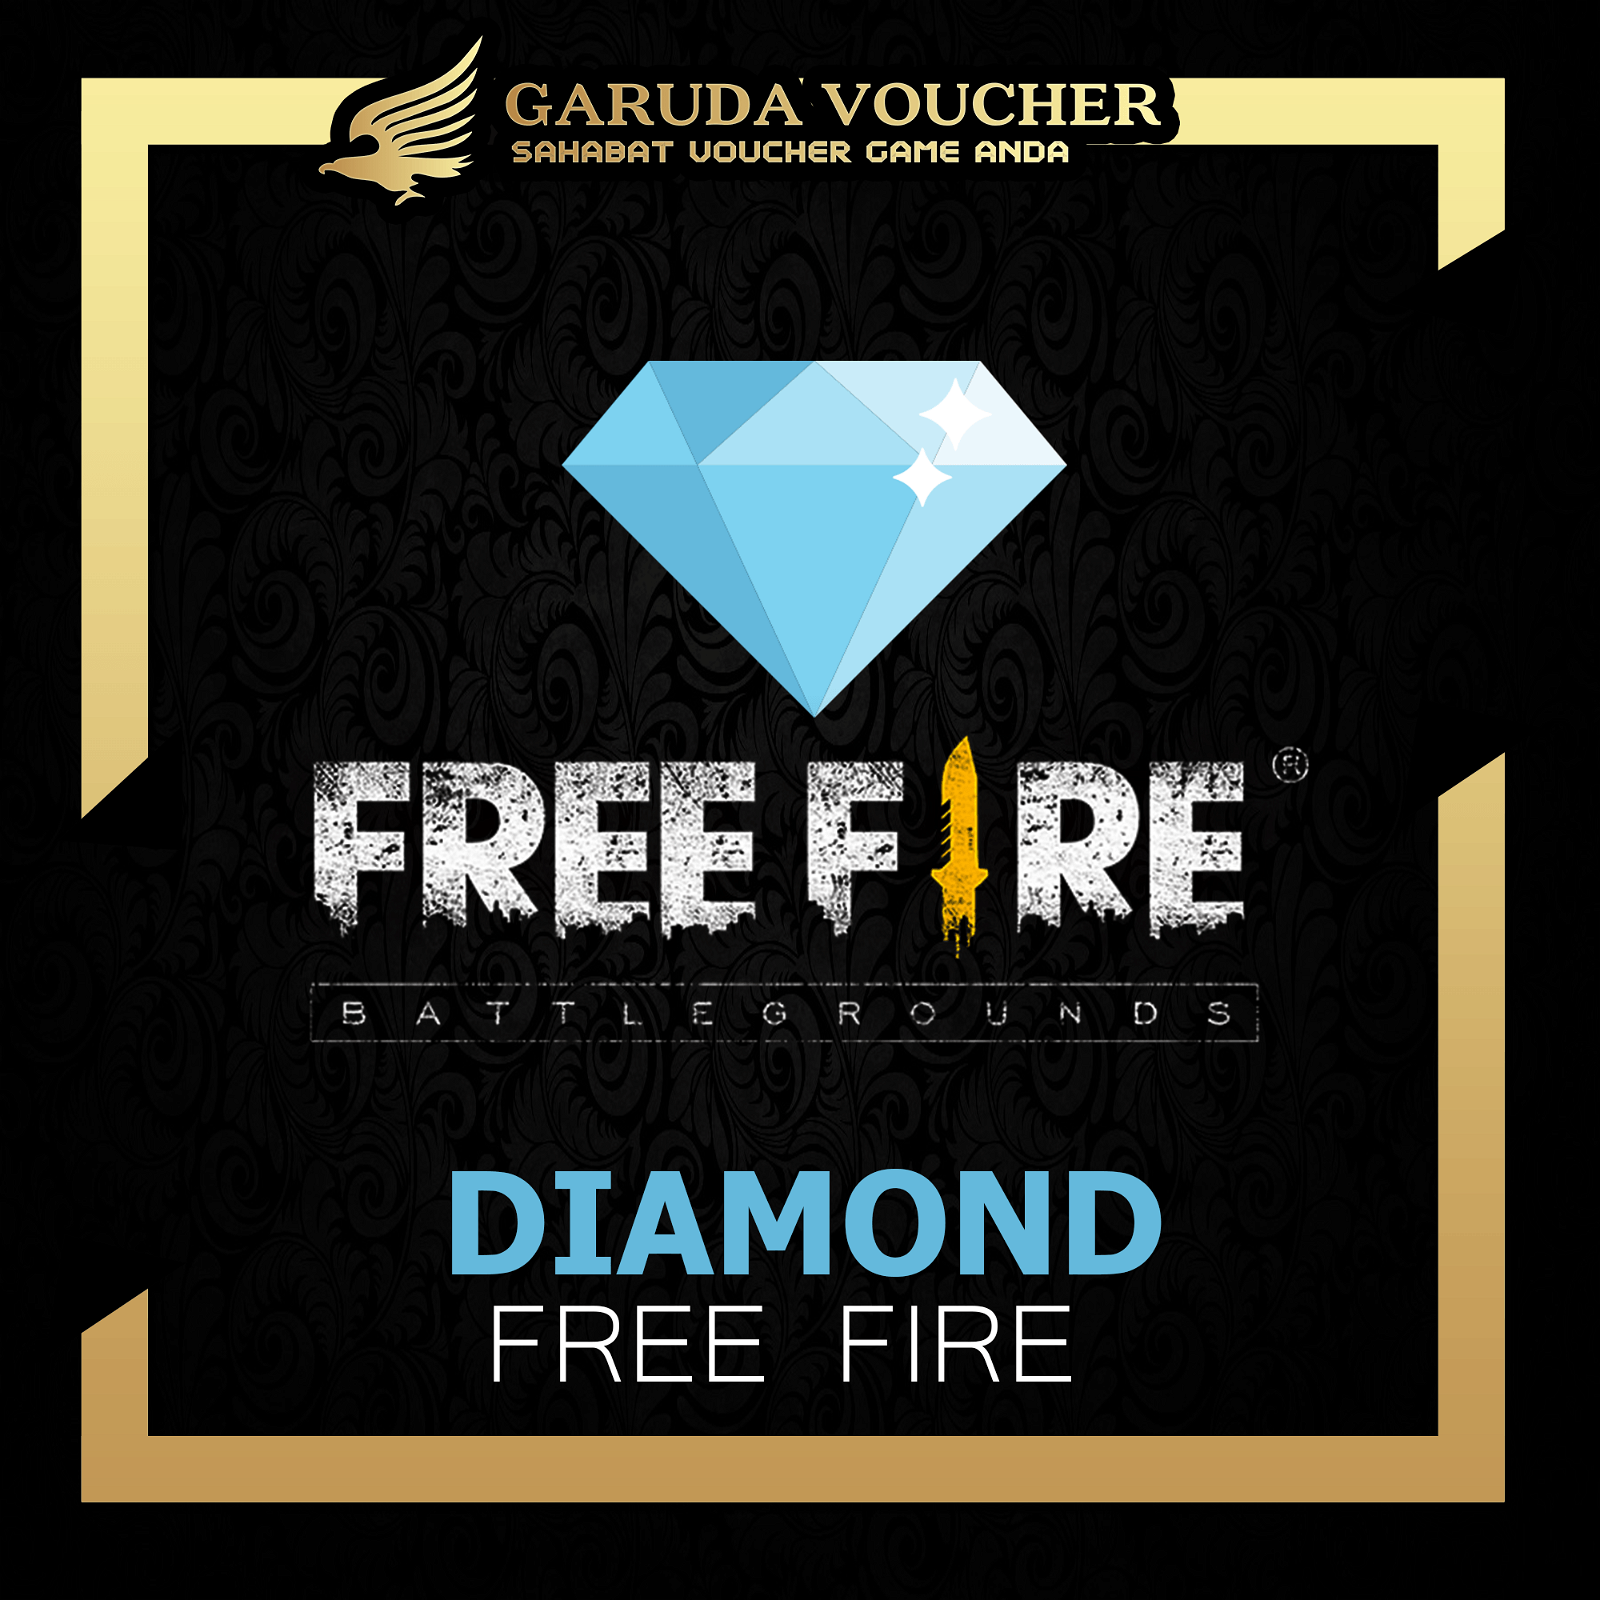 Garena Freefire 565 Diamond Via User Id Garuda Voucher